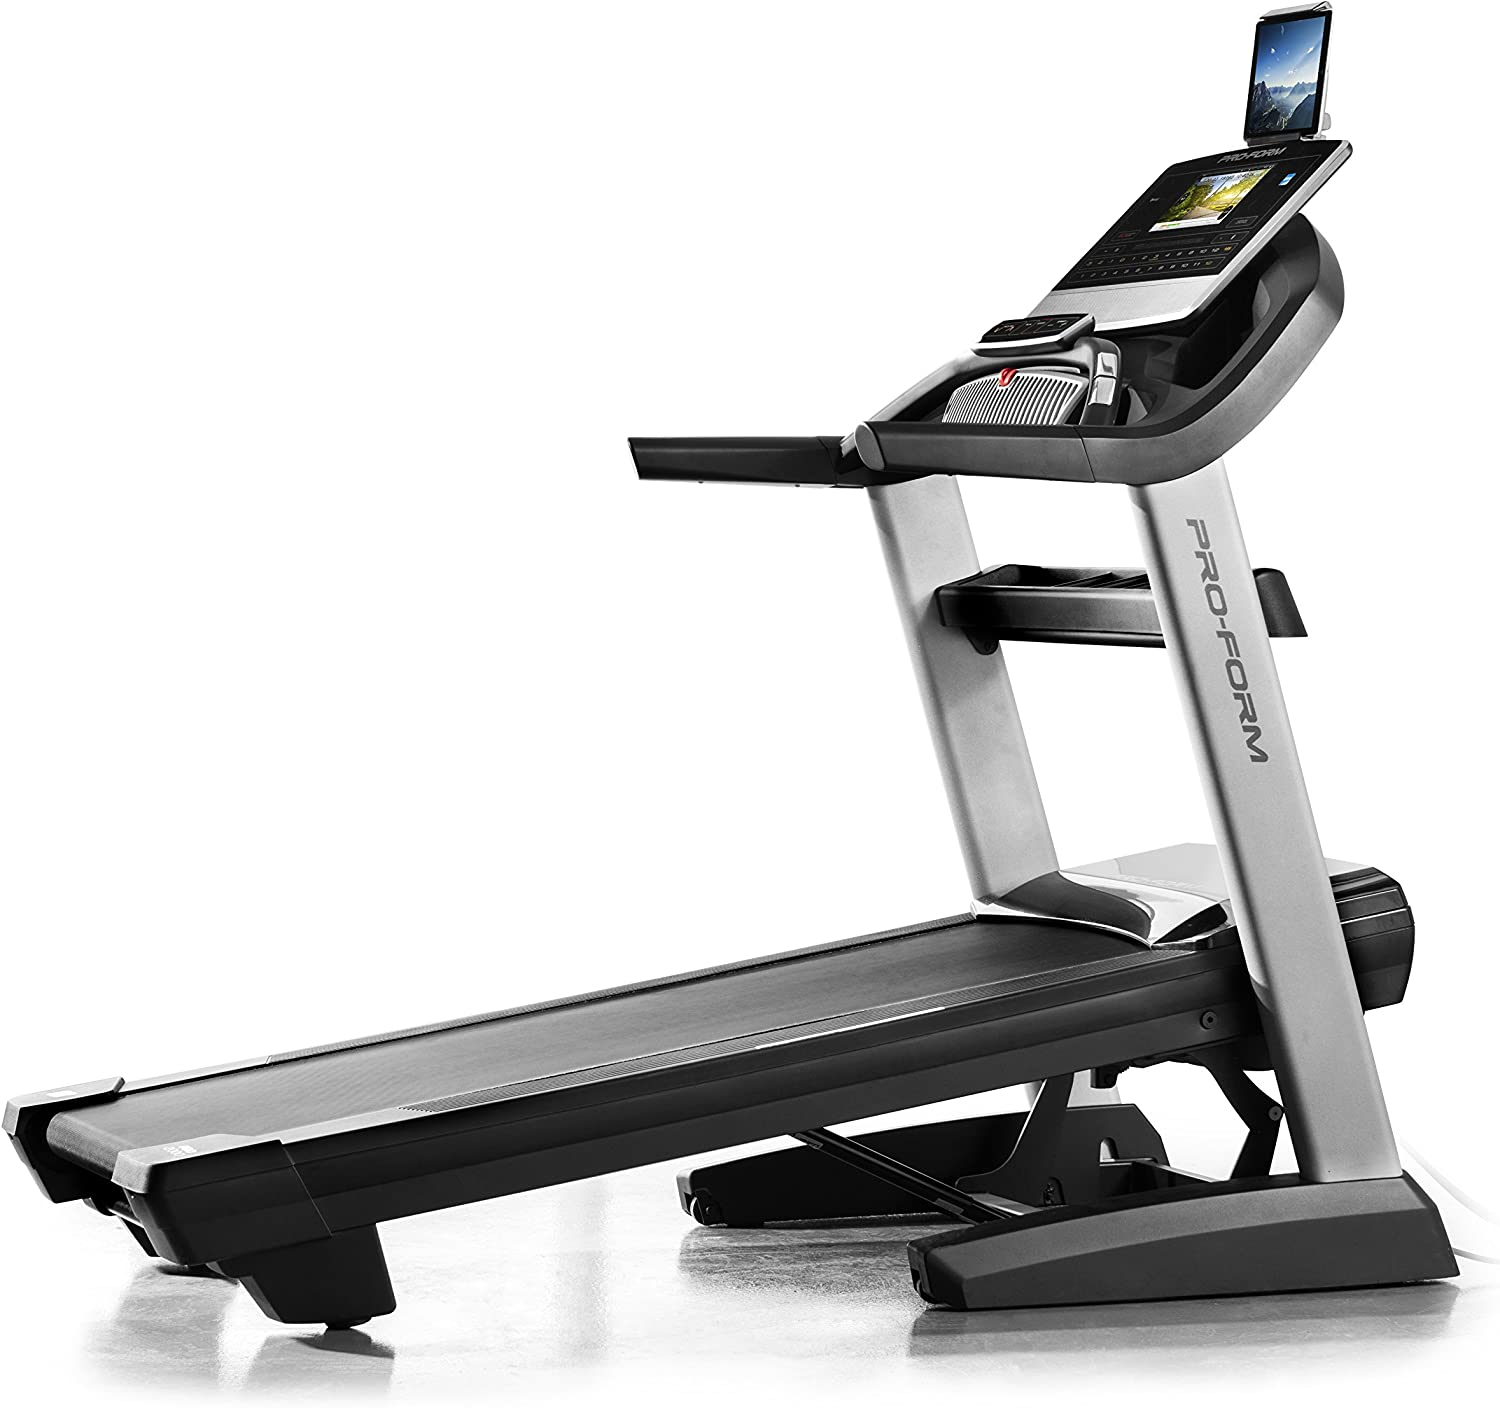 Best incline treadmill: ProForm PRO-9000 Treadmill